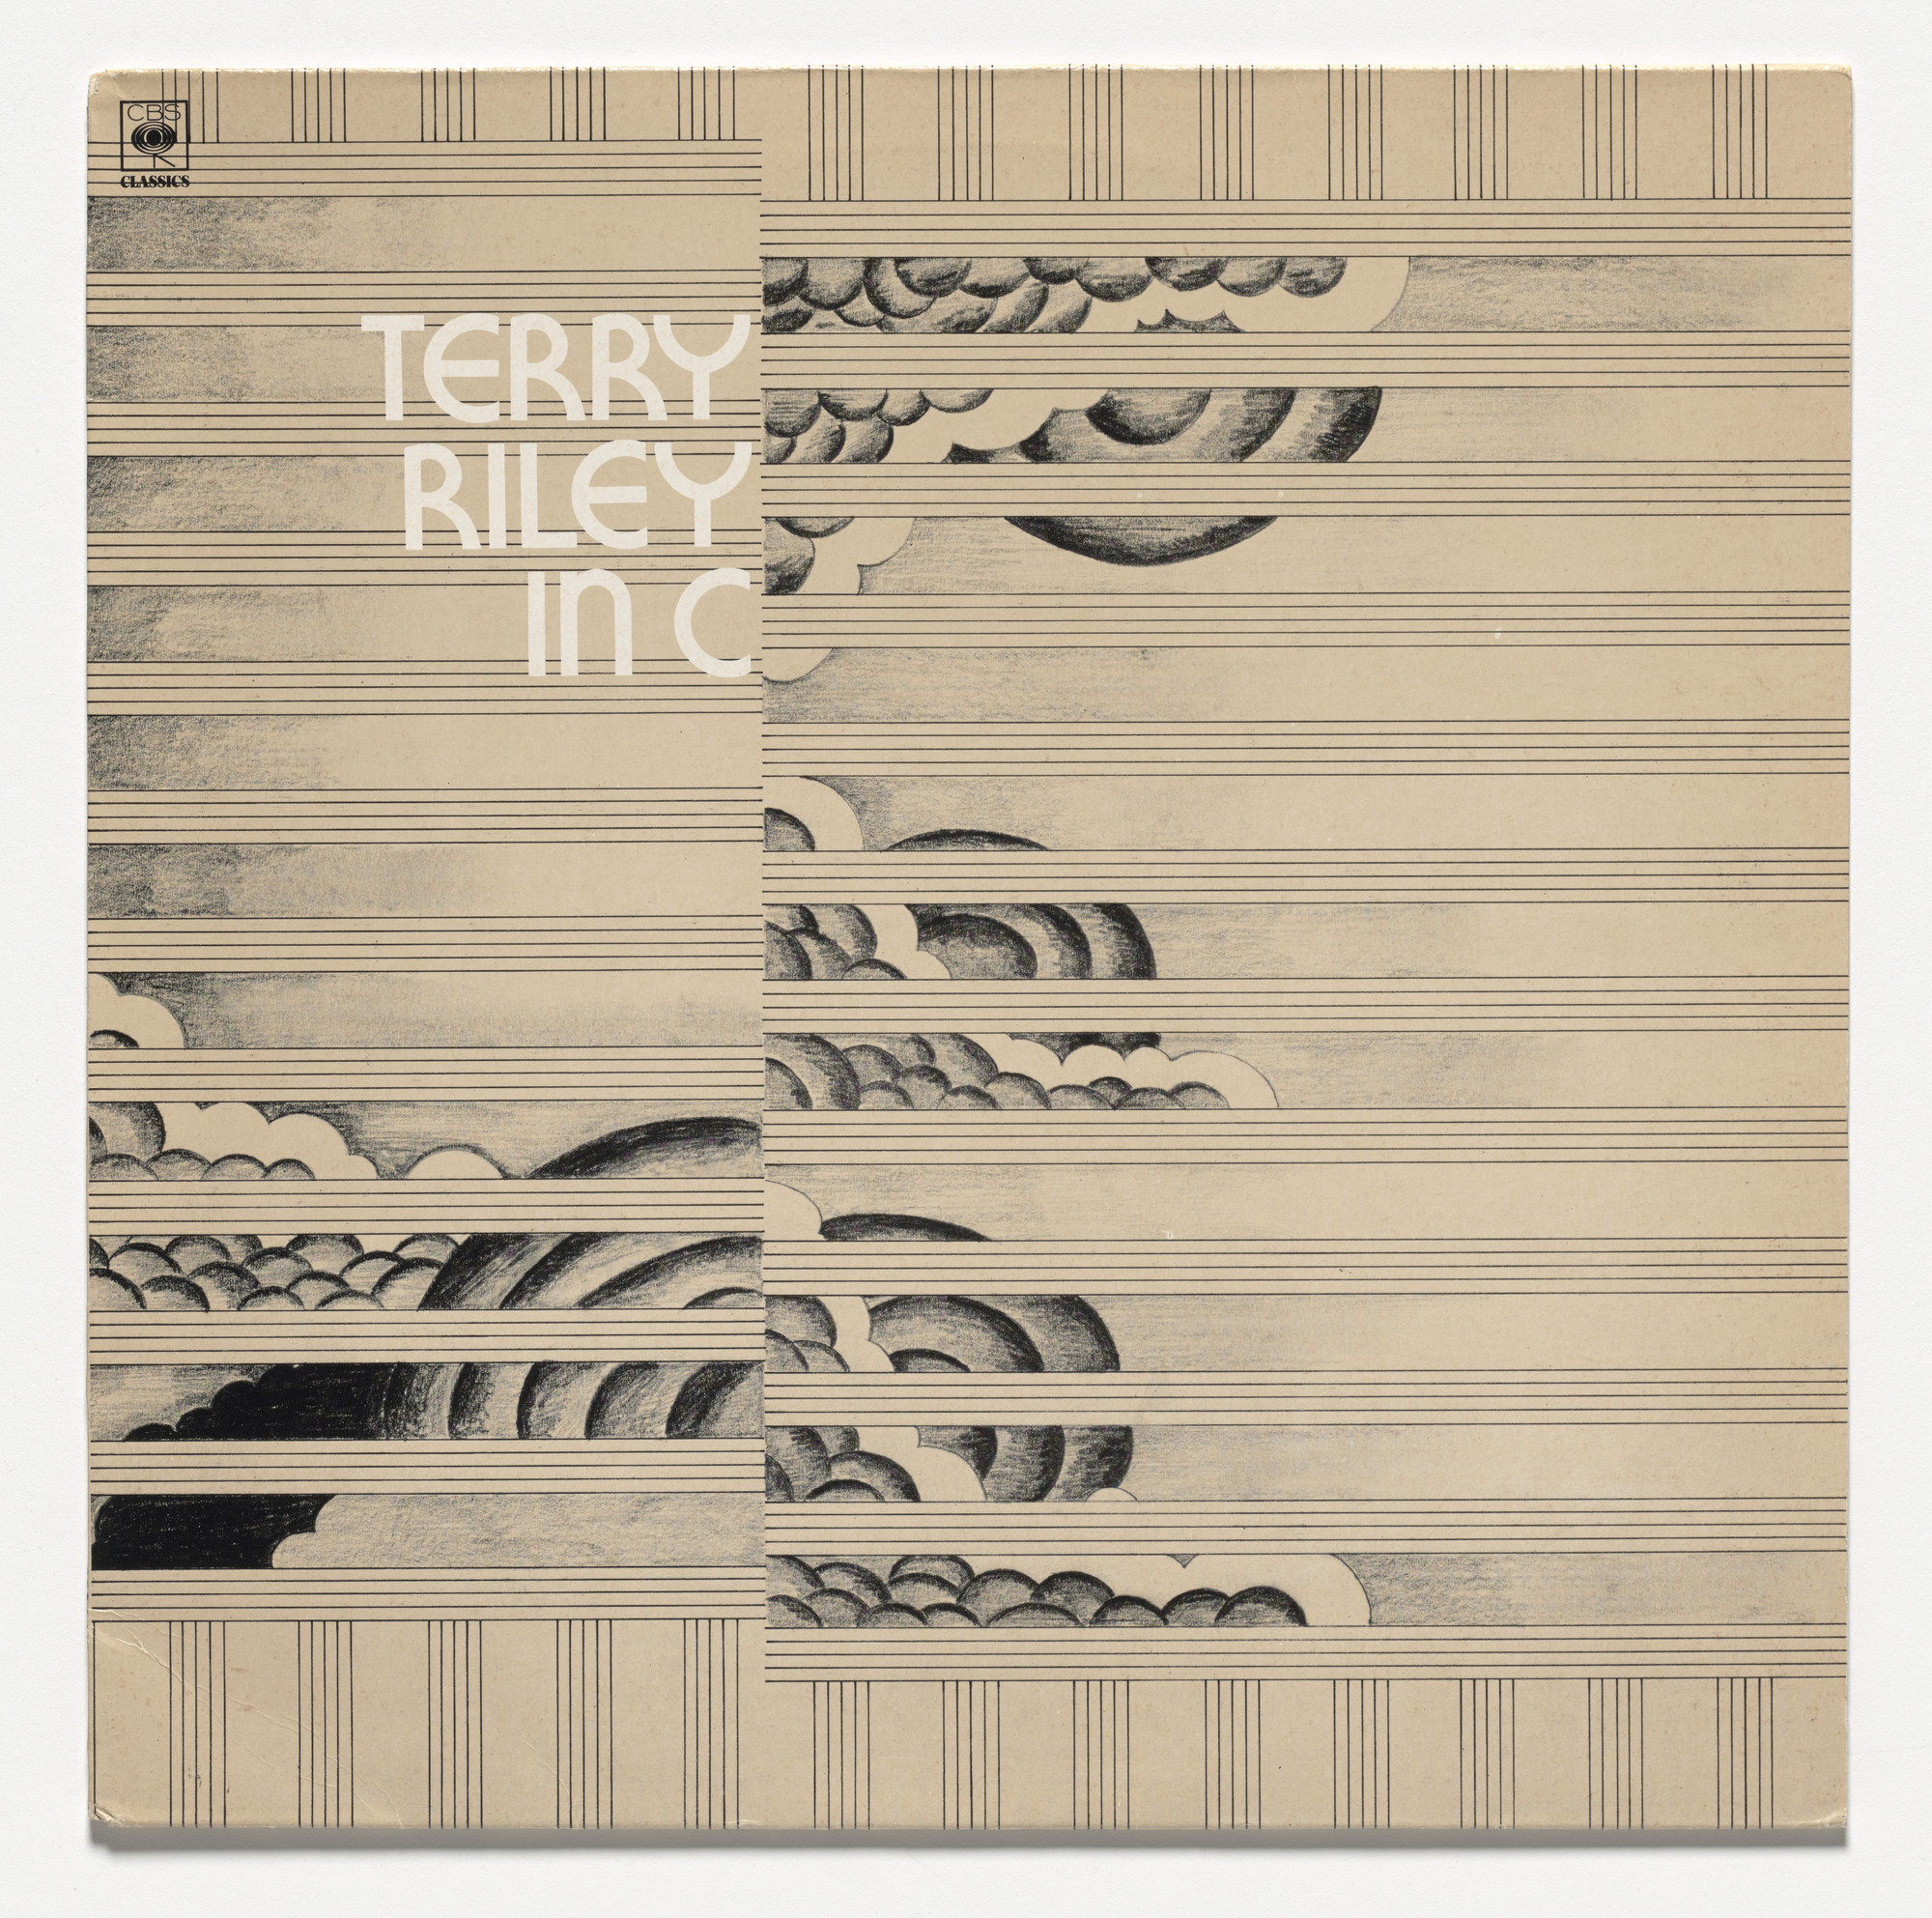 Terry Riley. In C. 1968